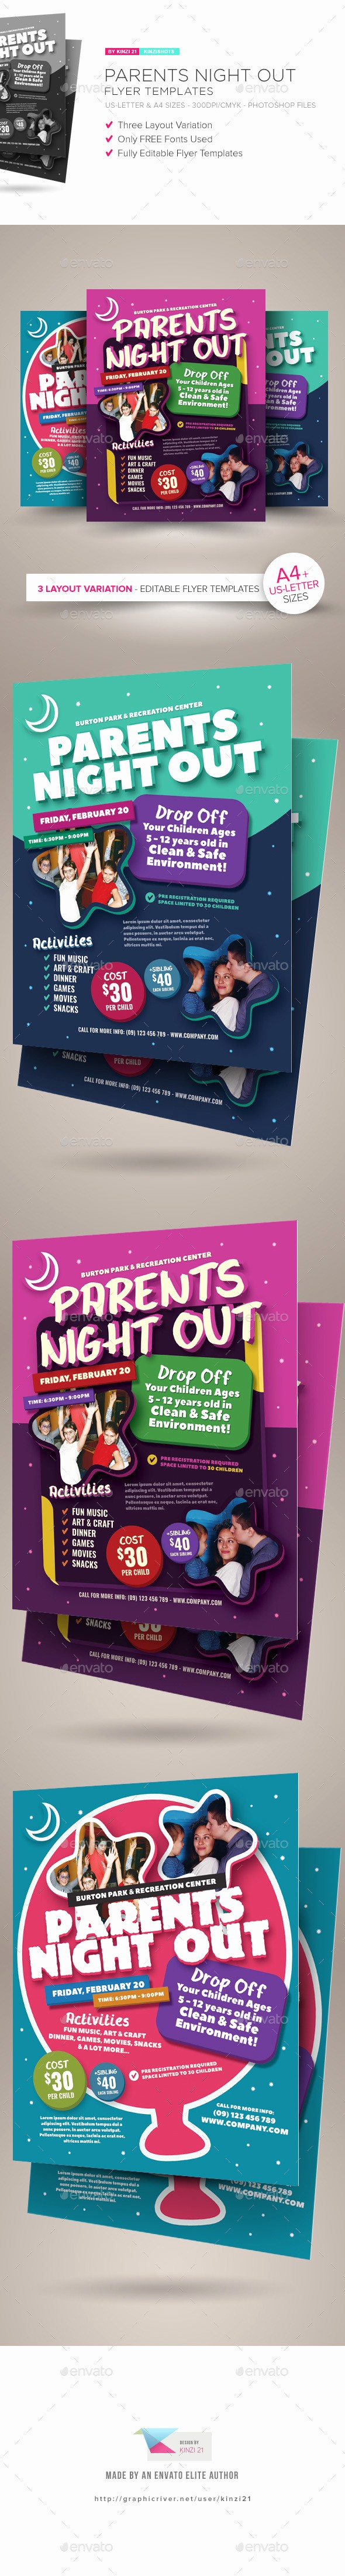 Parent Night Out Flyer Template Best Of Parents Night Out Flyer Templates by Kinzishots